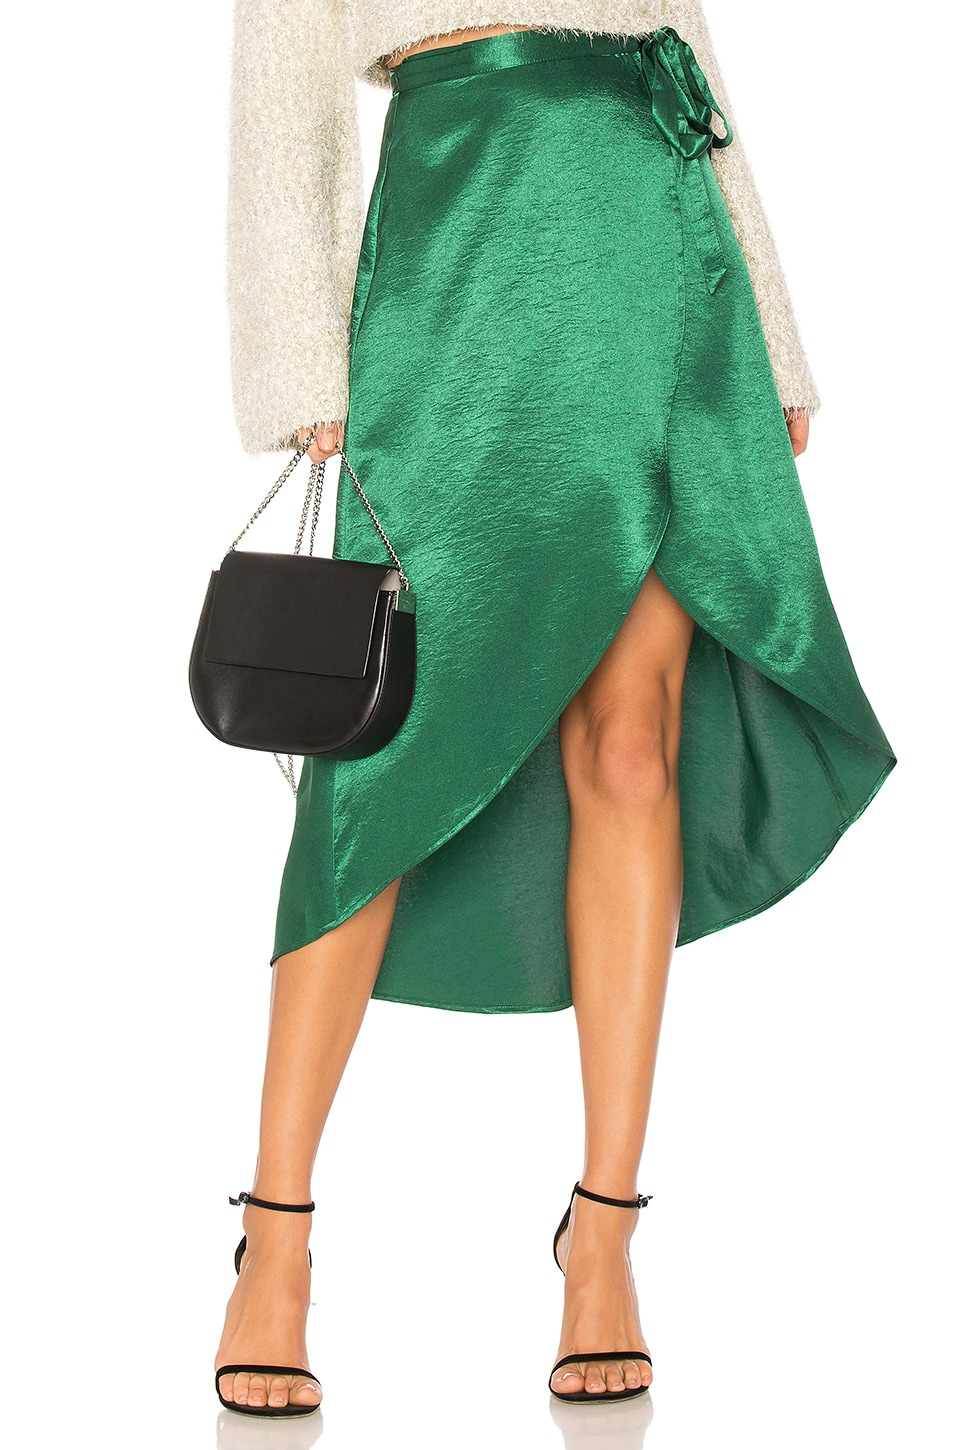 Privacy Please Java Wrap Skirt in Emerald